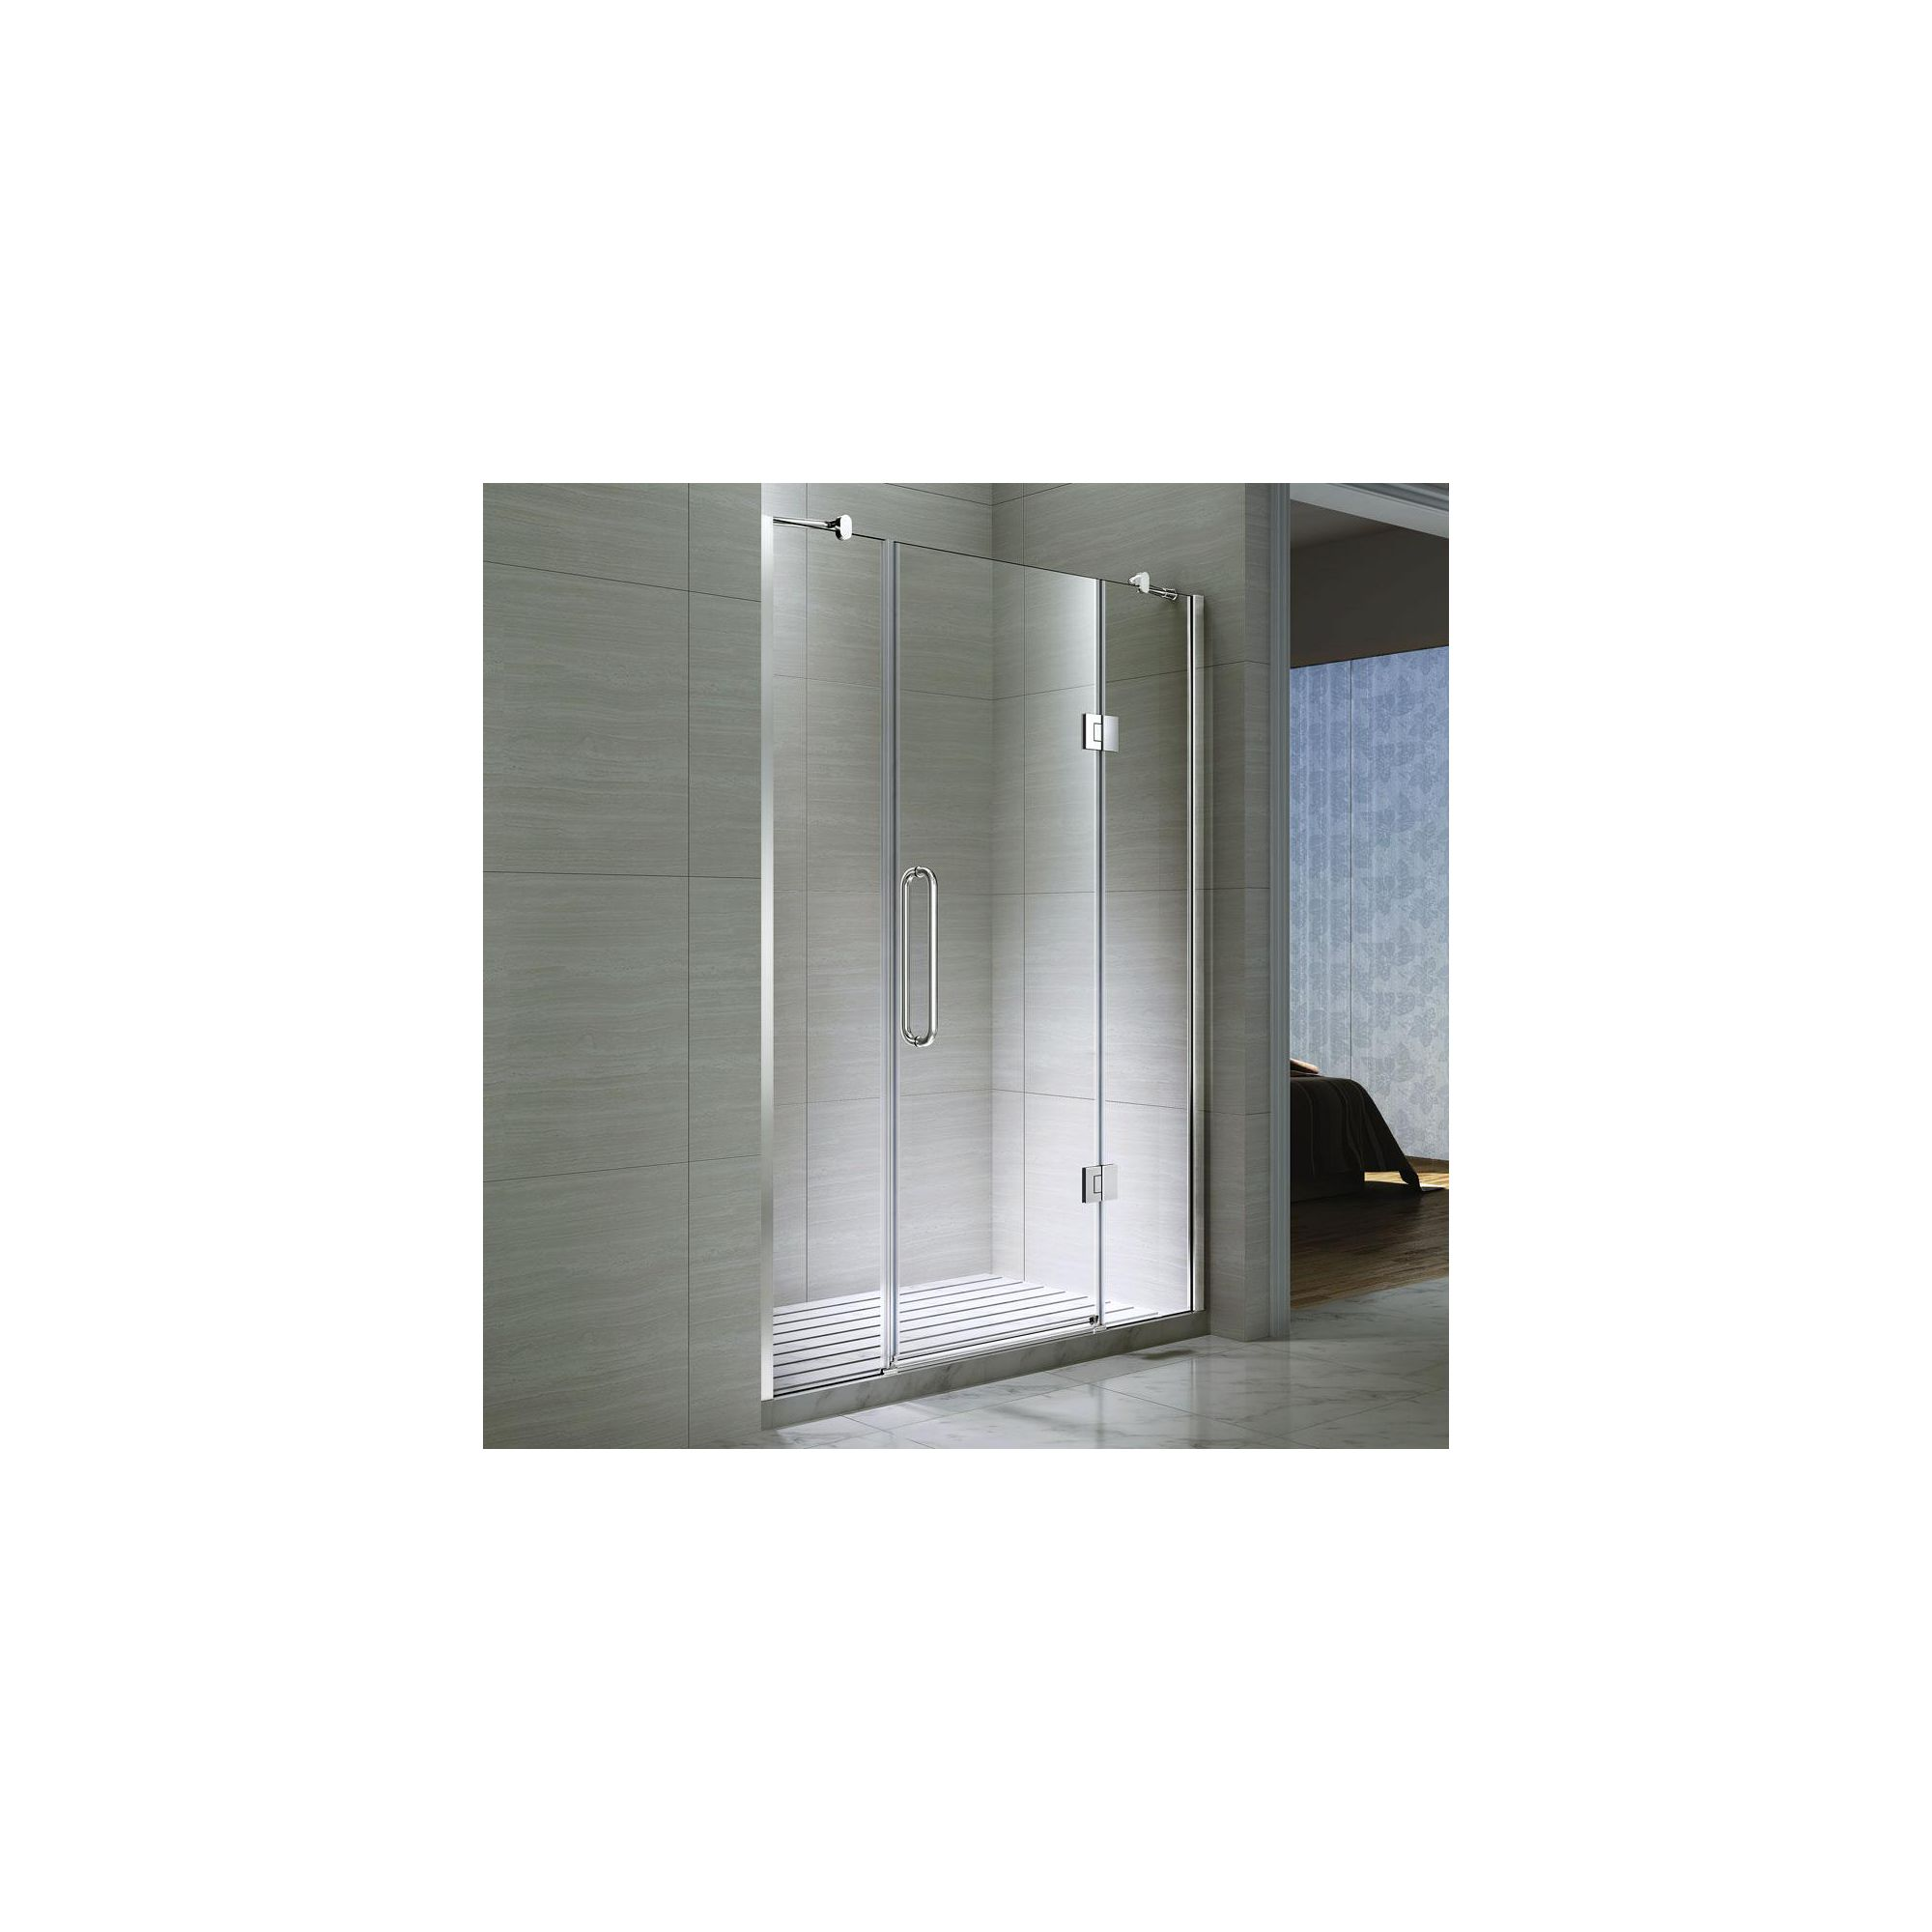 Desire Ten Double Inline Hinged Shower Door, 1200mm Wide, Semi-Frameless, 10mm Glass at Tesco Direct